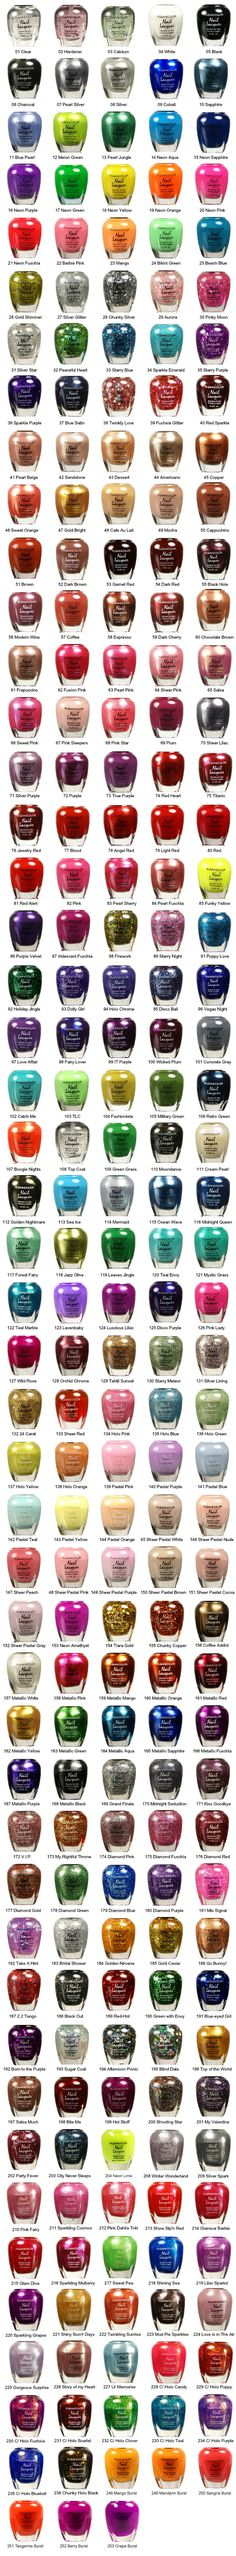 KLEANCOLOR Nail Polish - 20 colors for $19.95 / free shipping. Choose from 236 colors. Excellent! See you tube for reviews.